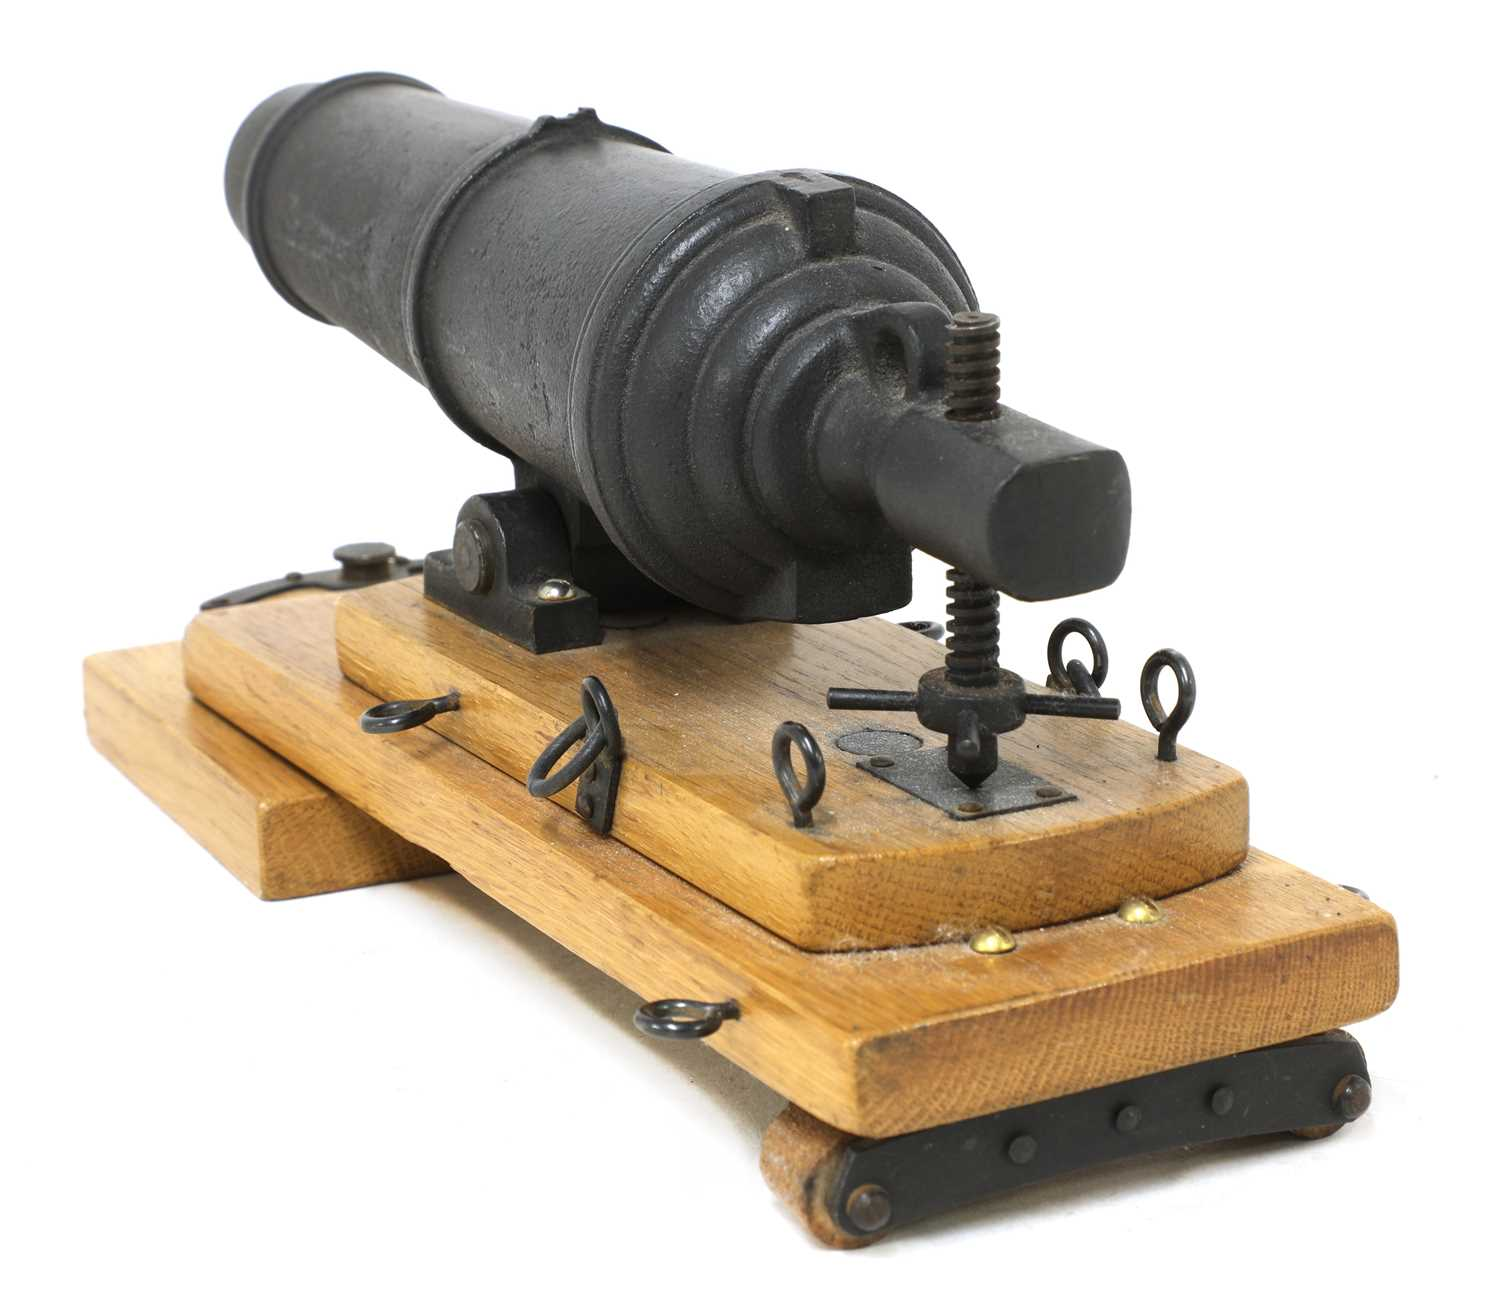 A model of a late 18th century naval carronade, - Image 3 of 5